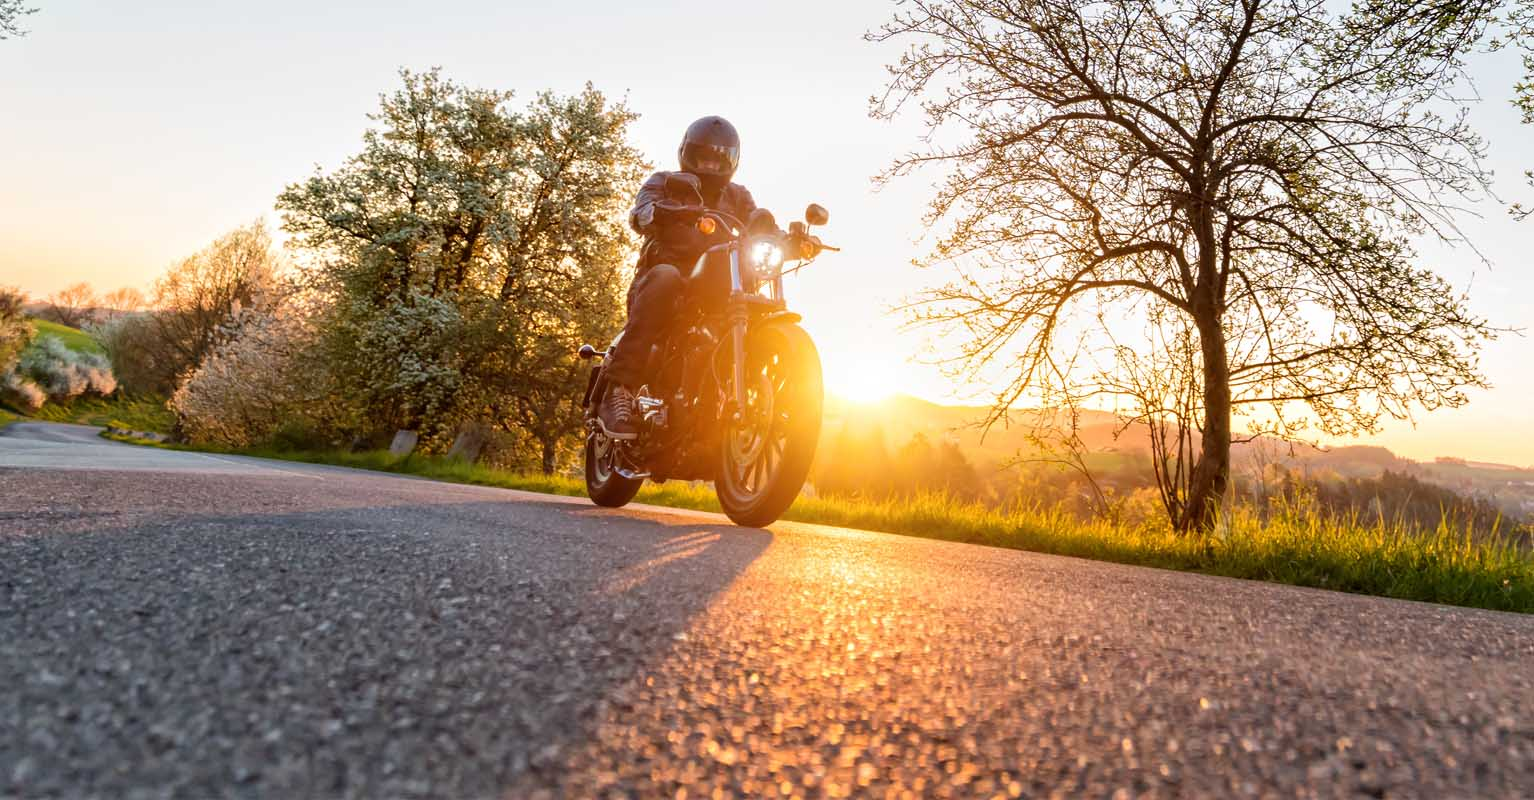 Emergency Roadside Service >> 5 Tips for Riding Your Motorcycle in the Wind | American Family Insurance